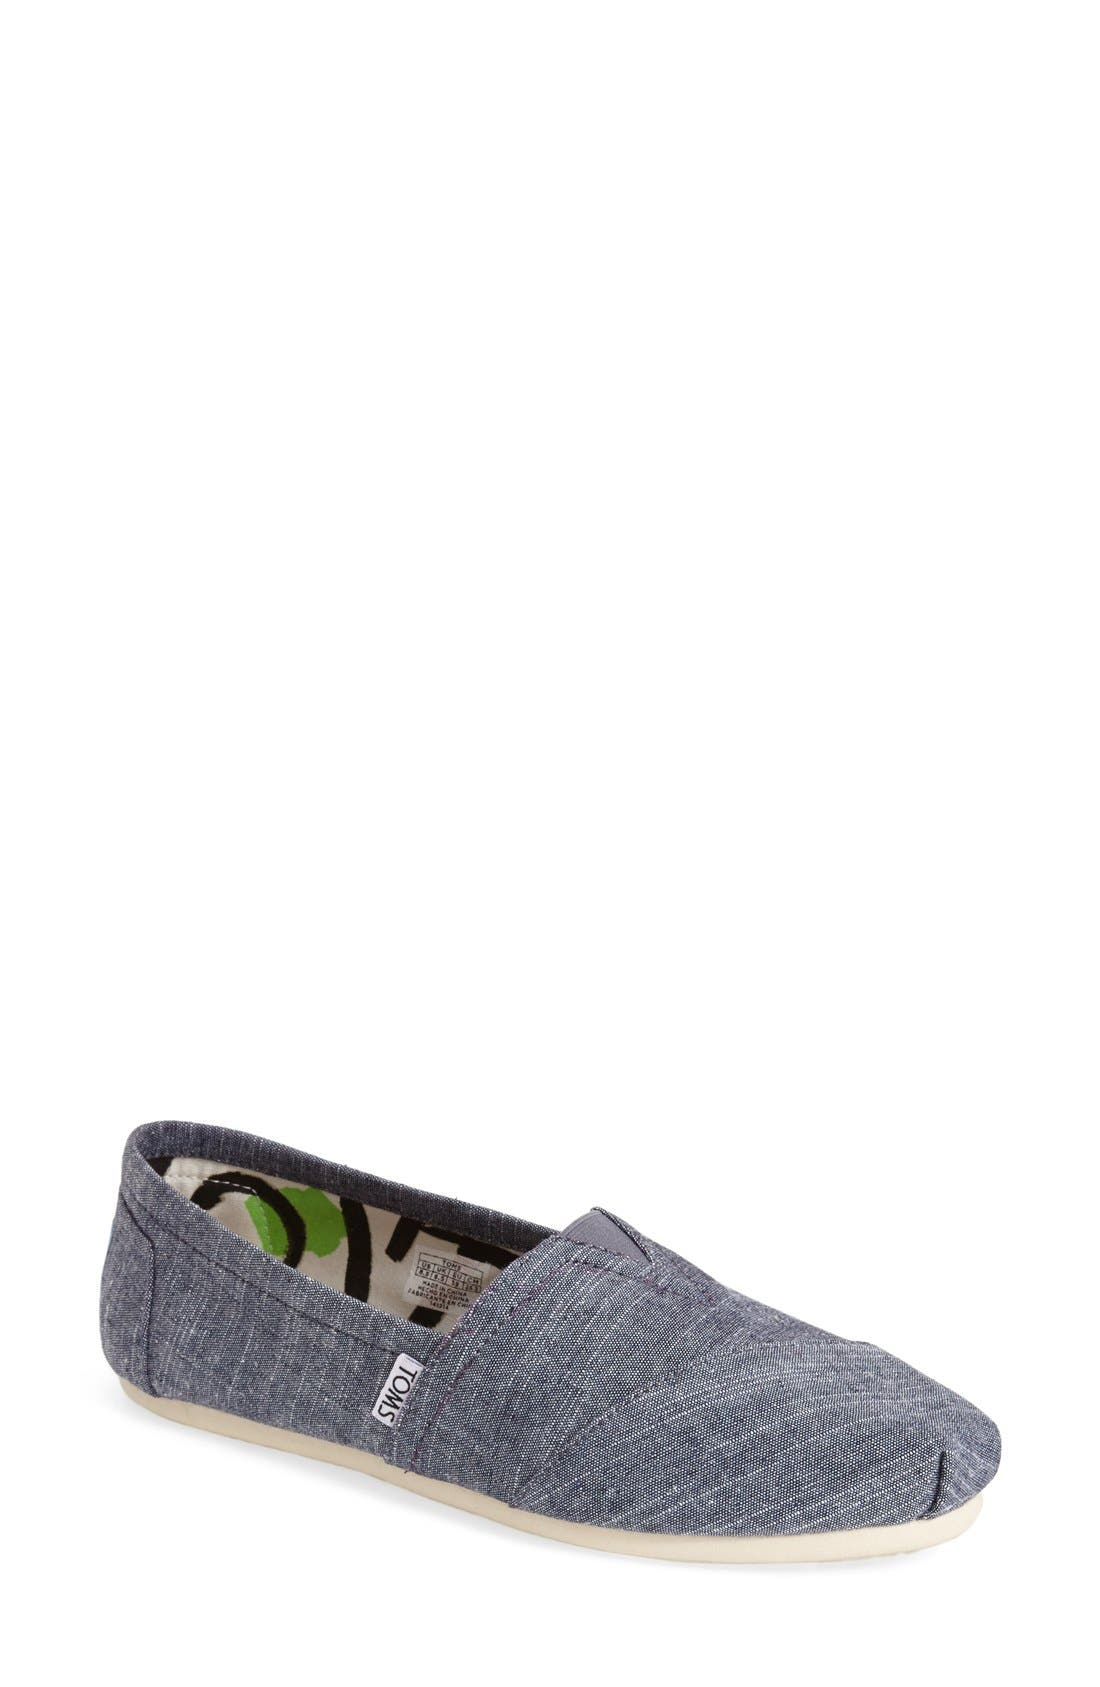 Alternate Image 1 Selected - TOMS 'Classic - Chambray' Slip-On (Women)